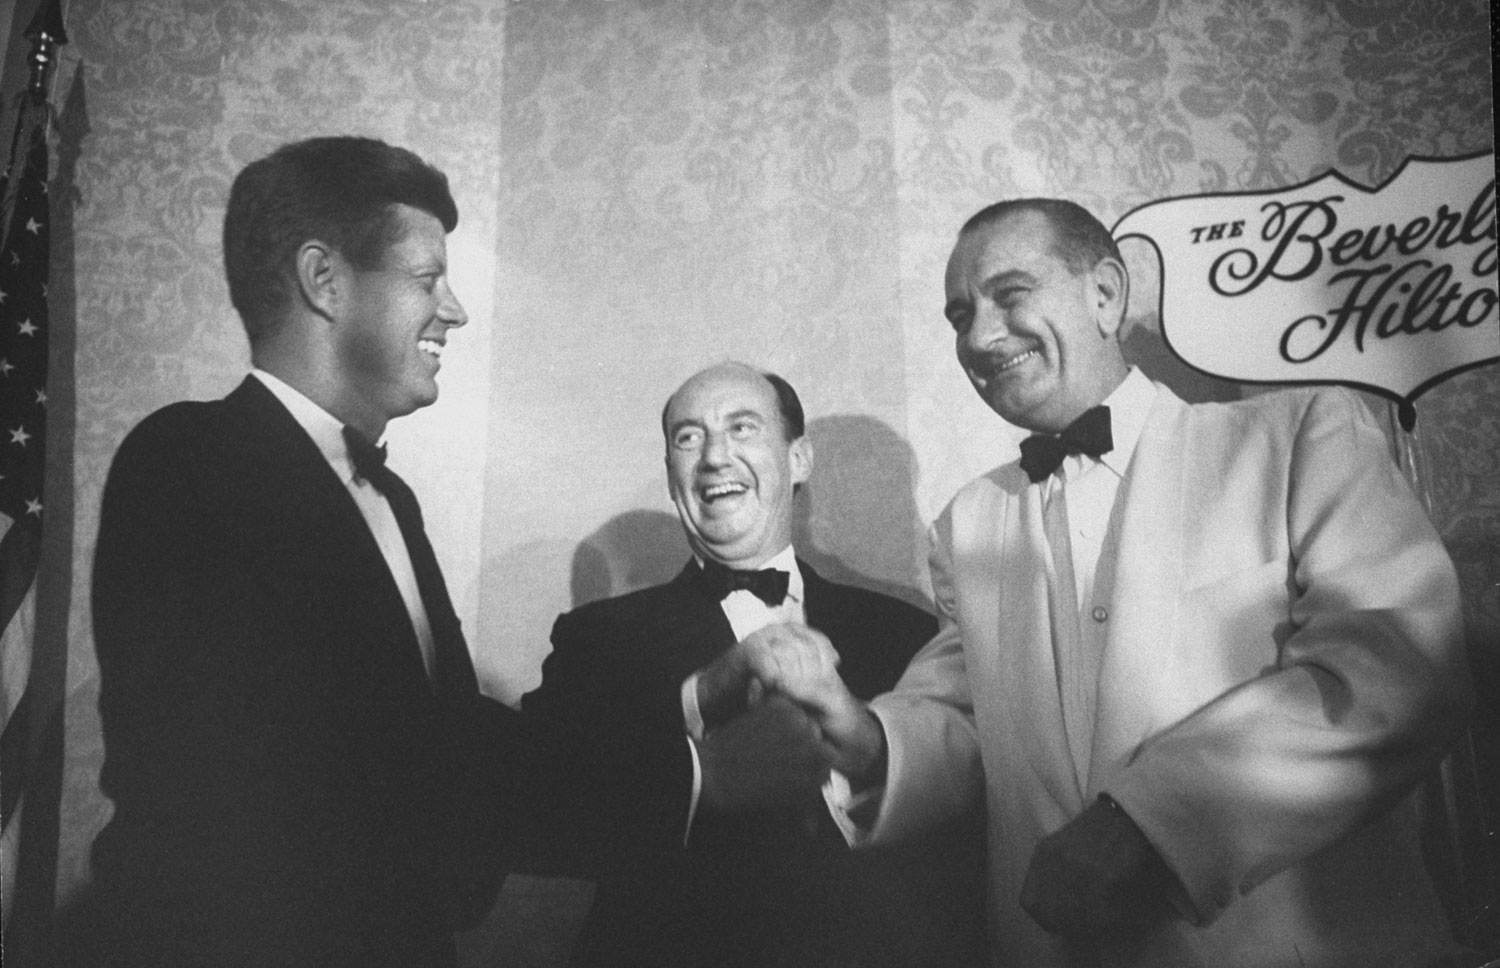 Adlai Stevenson (center) and Lyndon Johnson (right) congratulate John F. Kennedy on winning the party's presidential nomination at the 1960 Democratic National Convention in Los Angeles.